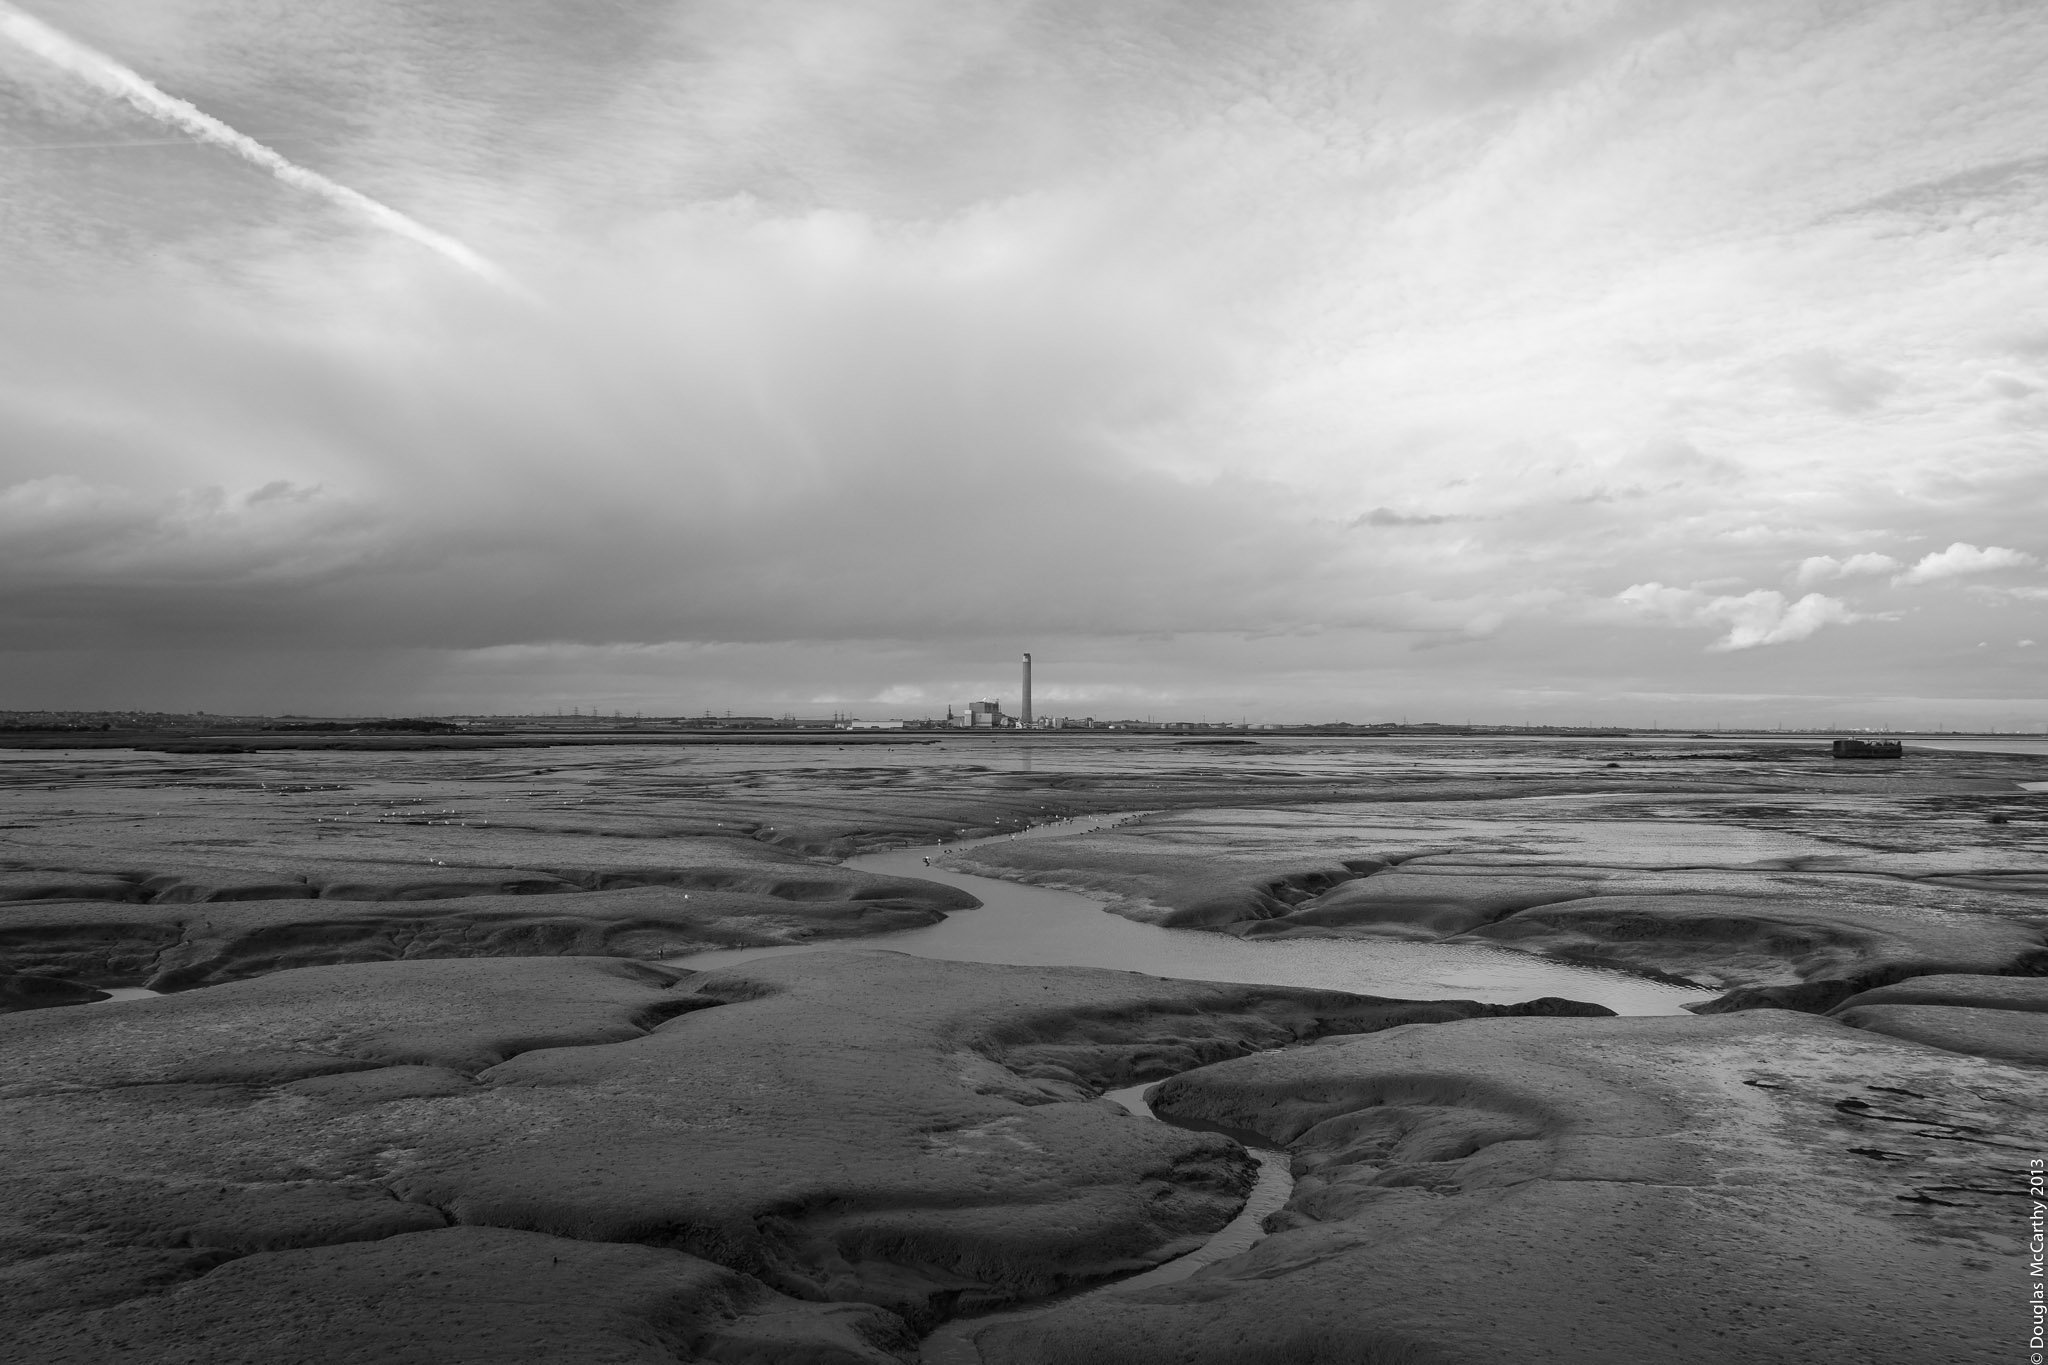 Kingsnorth Power Station from Cinque Port Marshes, Medway, 2012